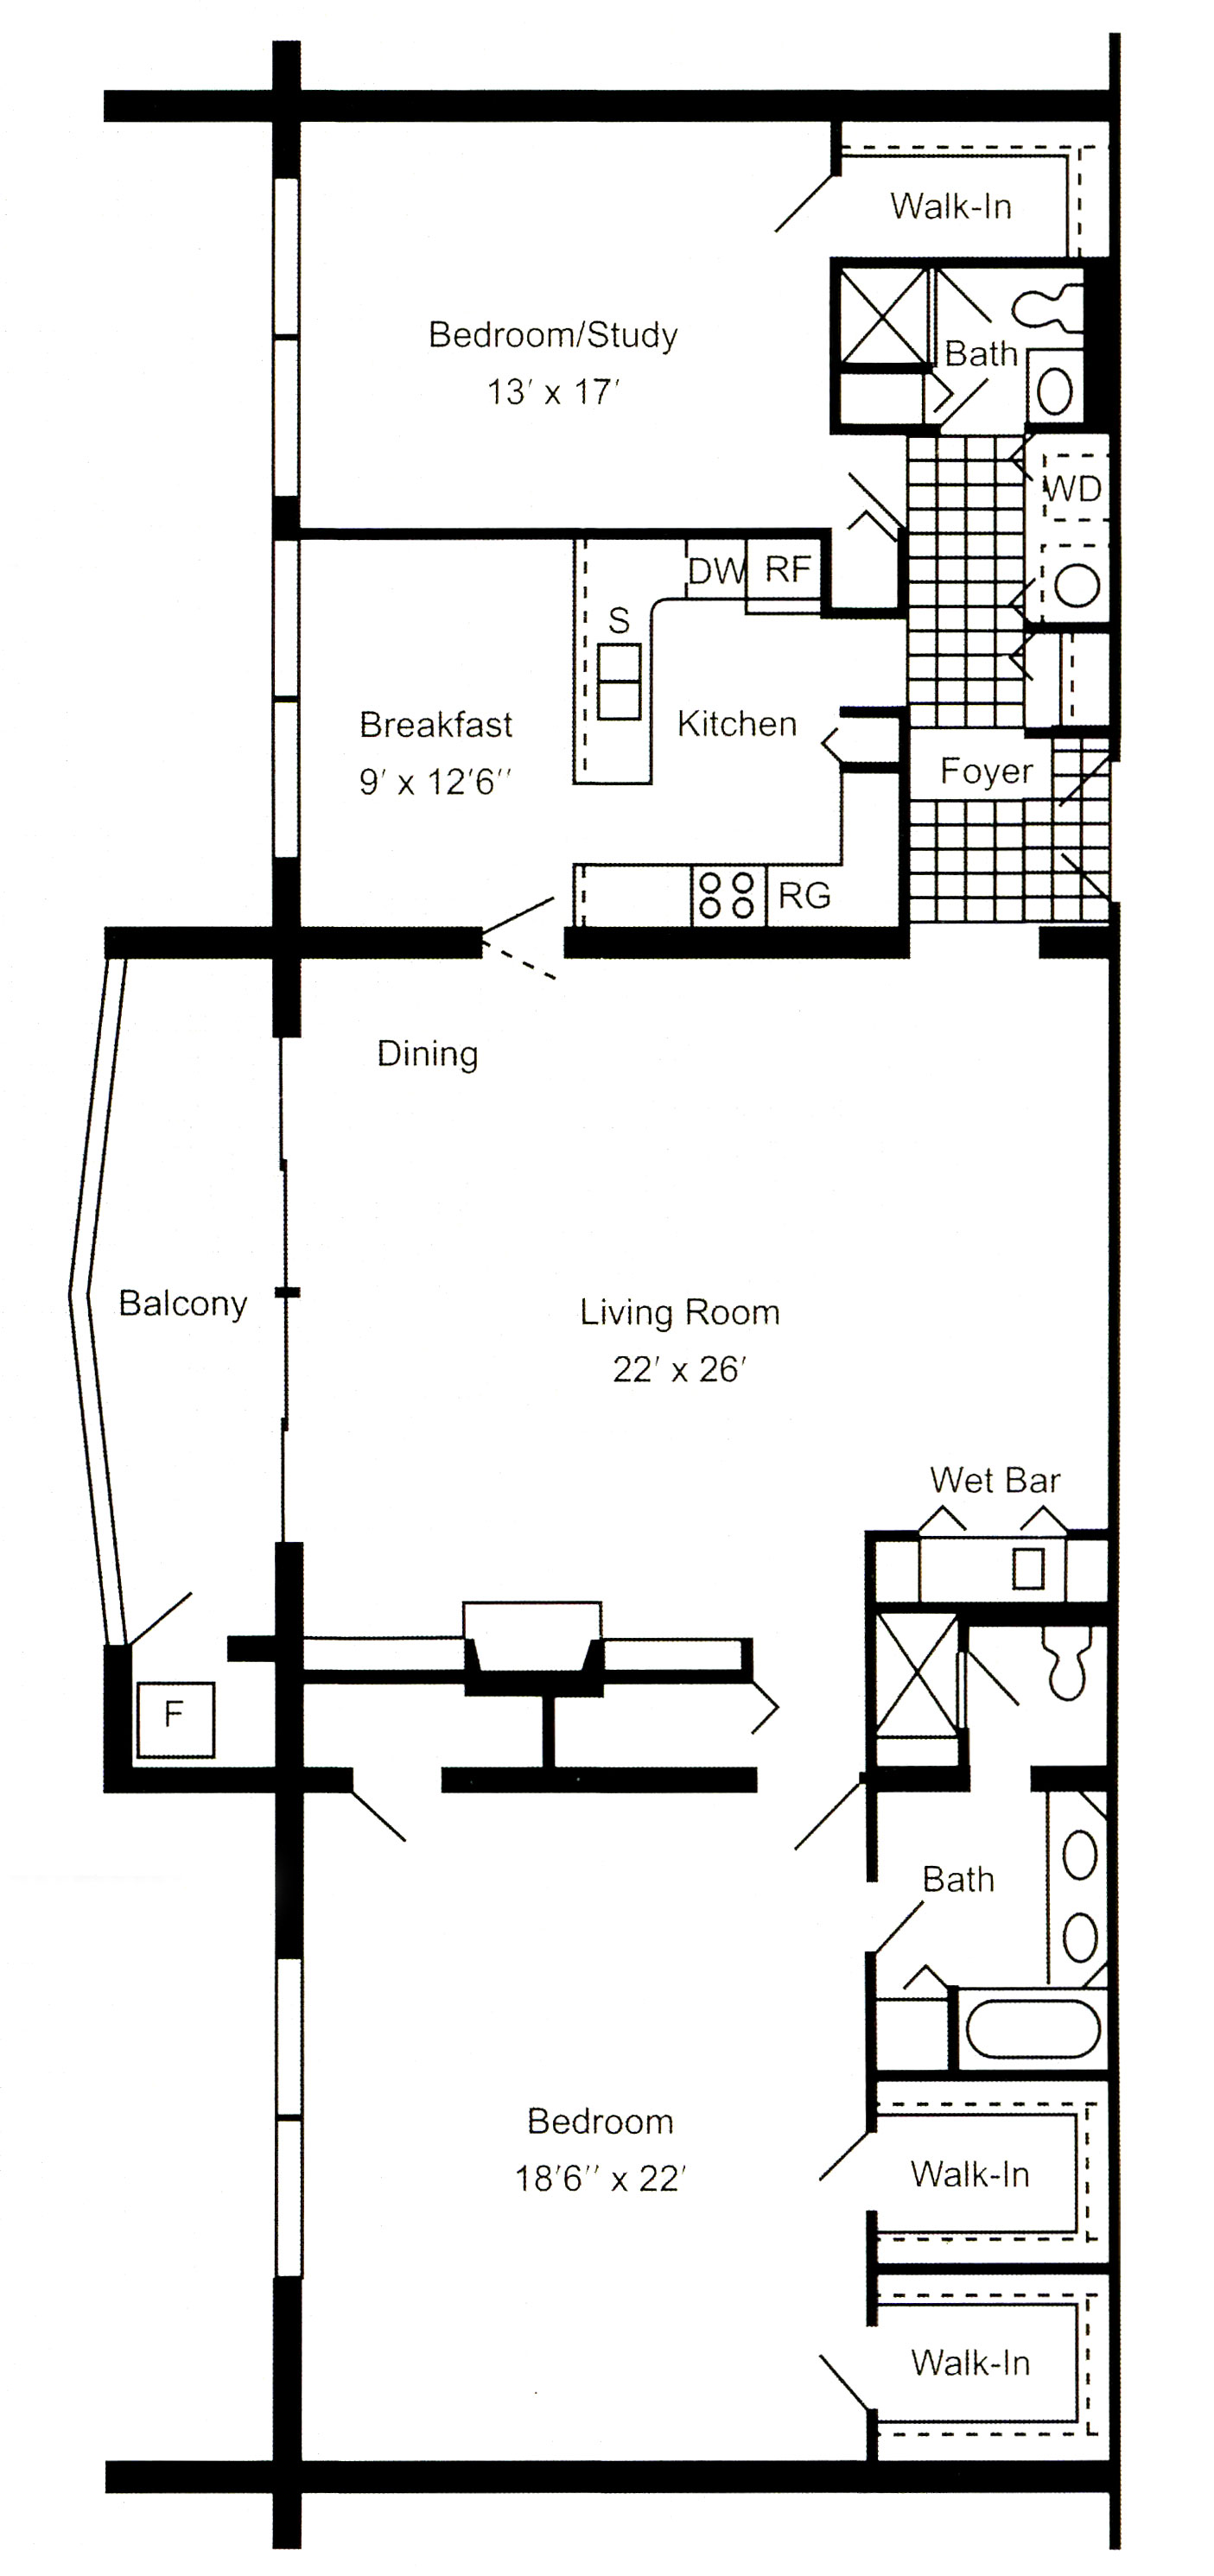 Luxury apartments in Erie, PA, South Shore Place, offers two bedroom, two bathroom 2,000 square foot penthouse apartments.